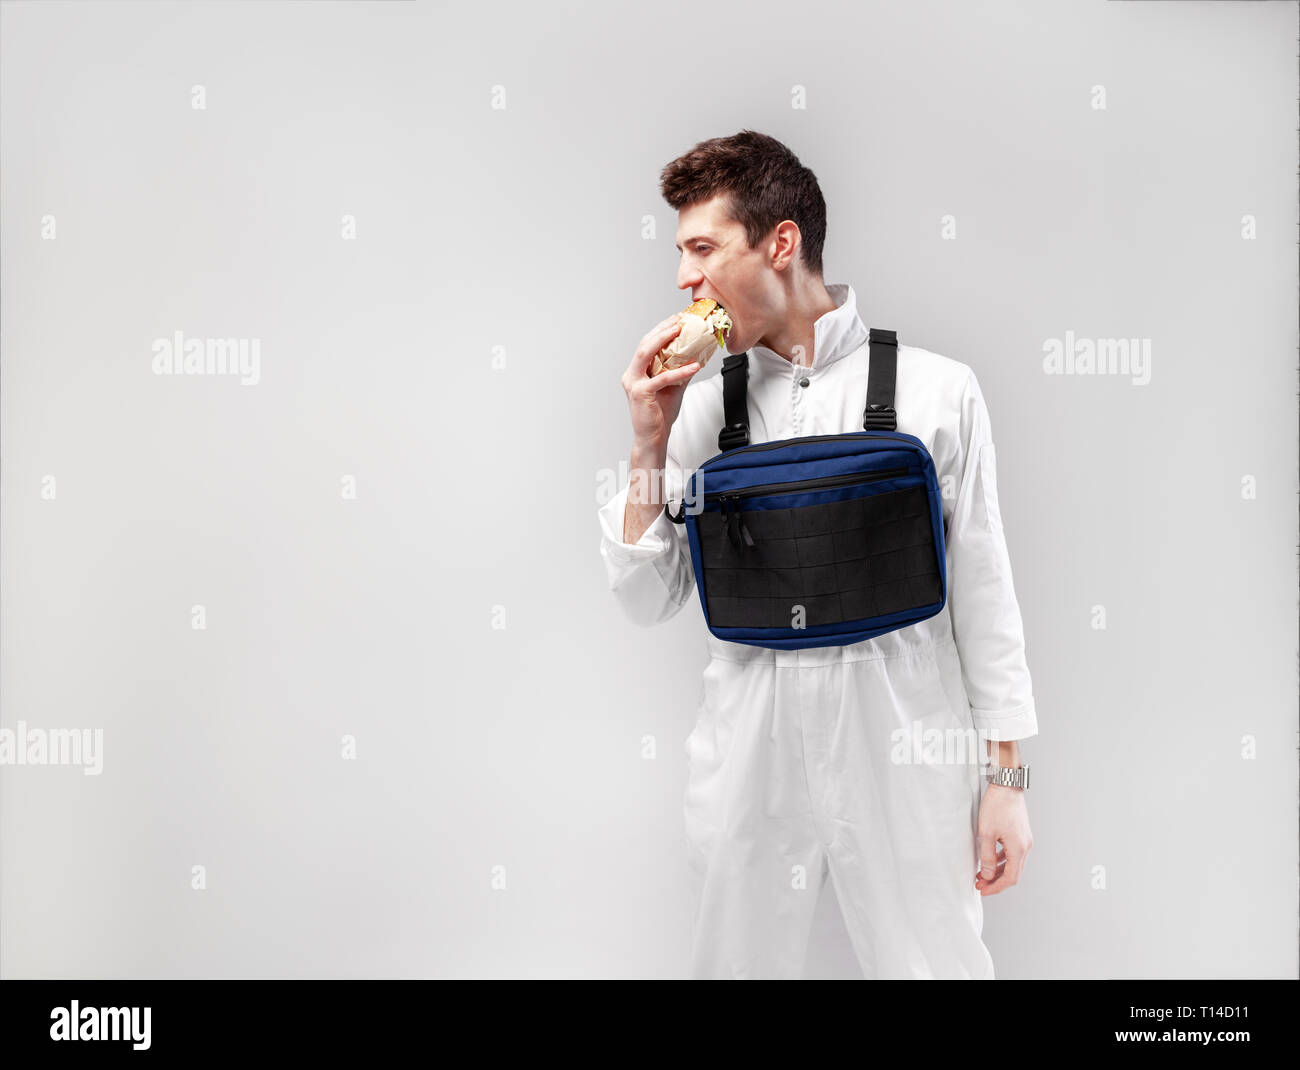 Young stylish male worker with chest rig bag is eating a tasty juicy burger on a white background - Stock Image